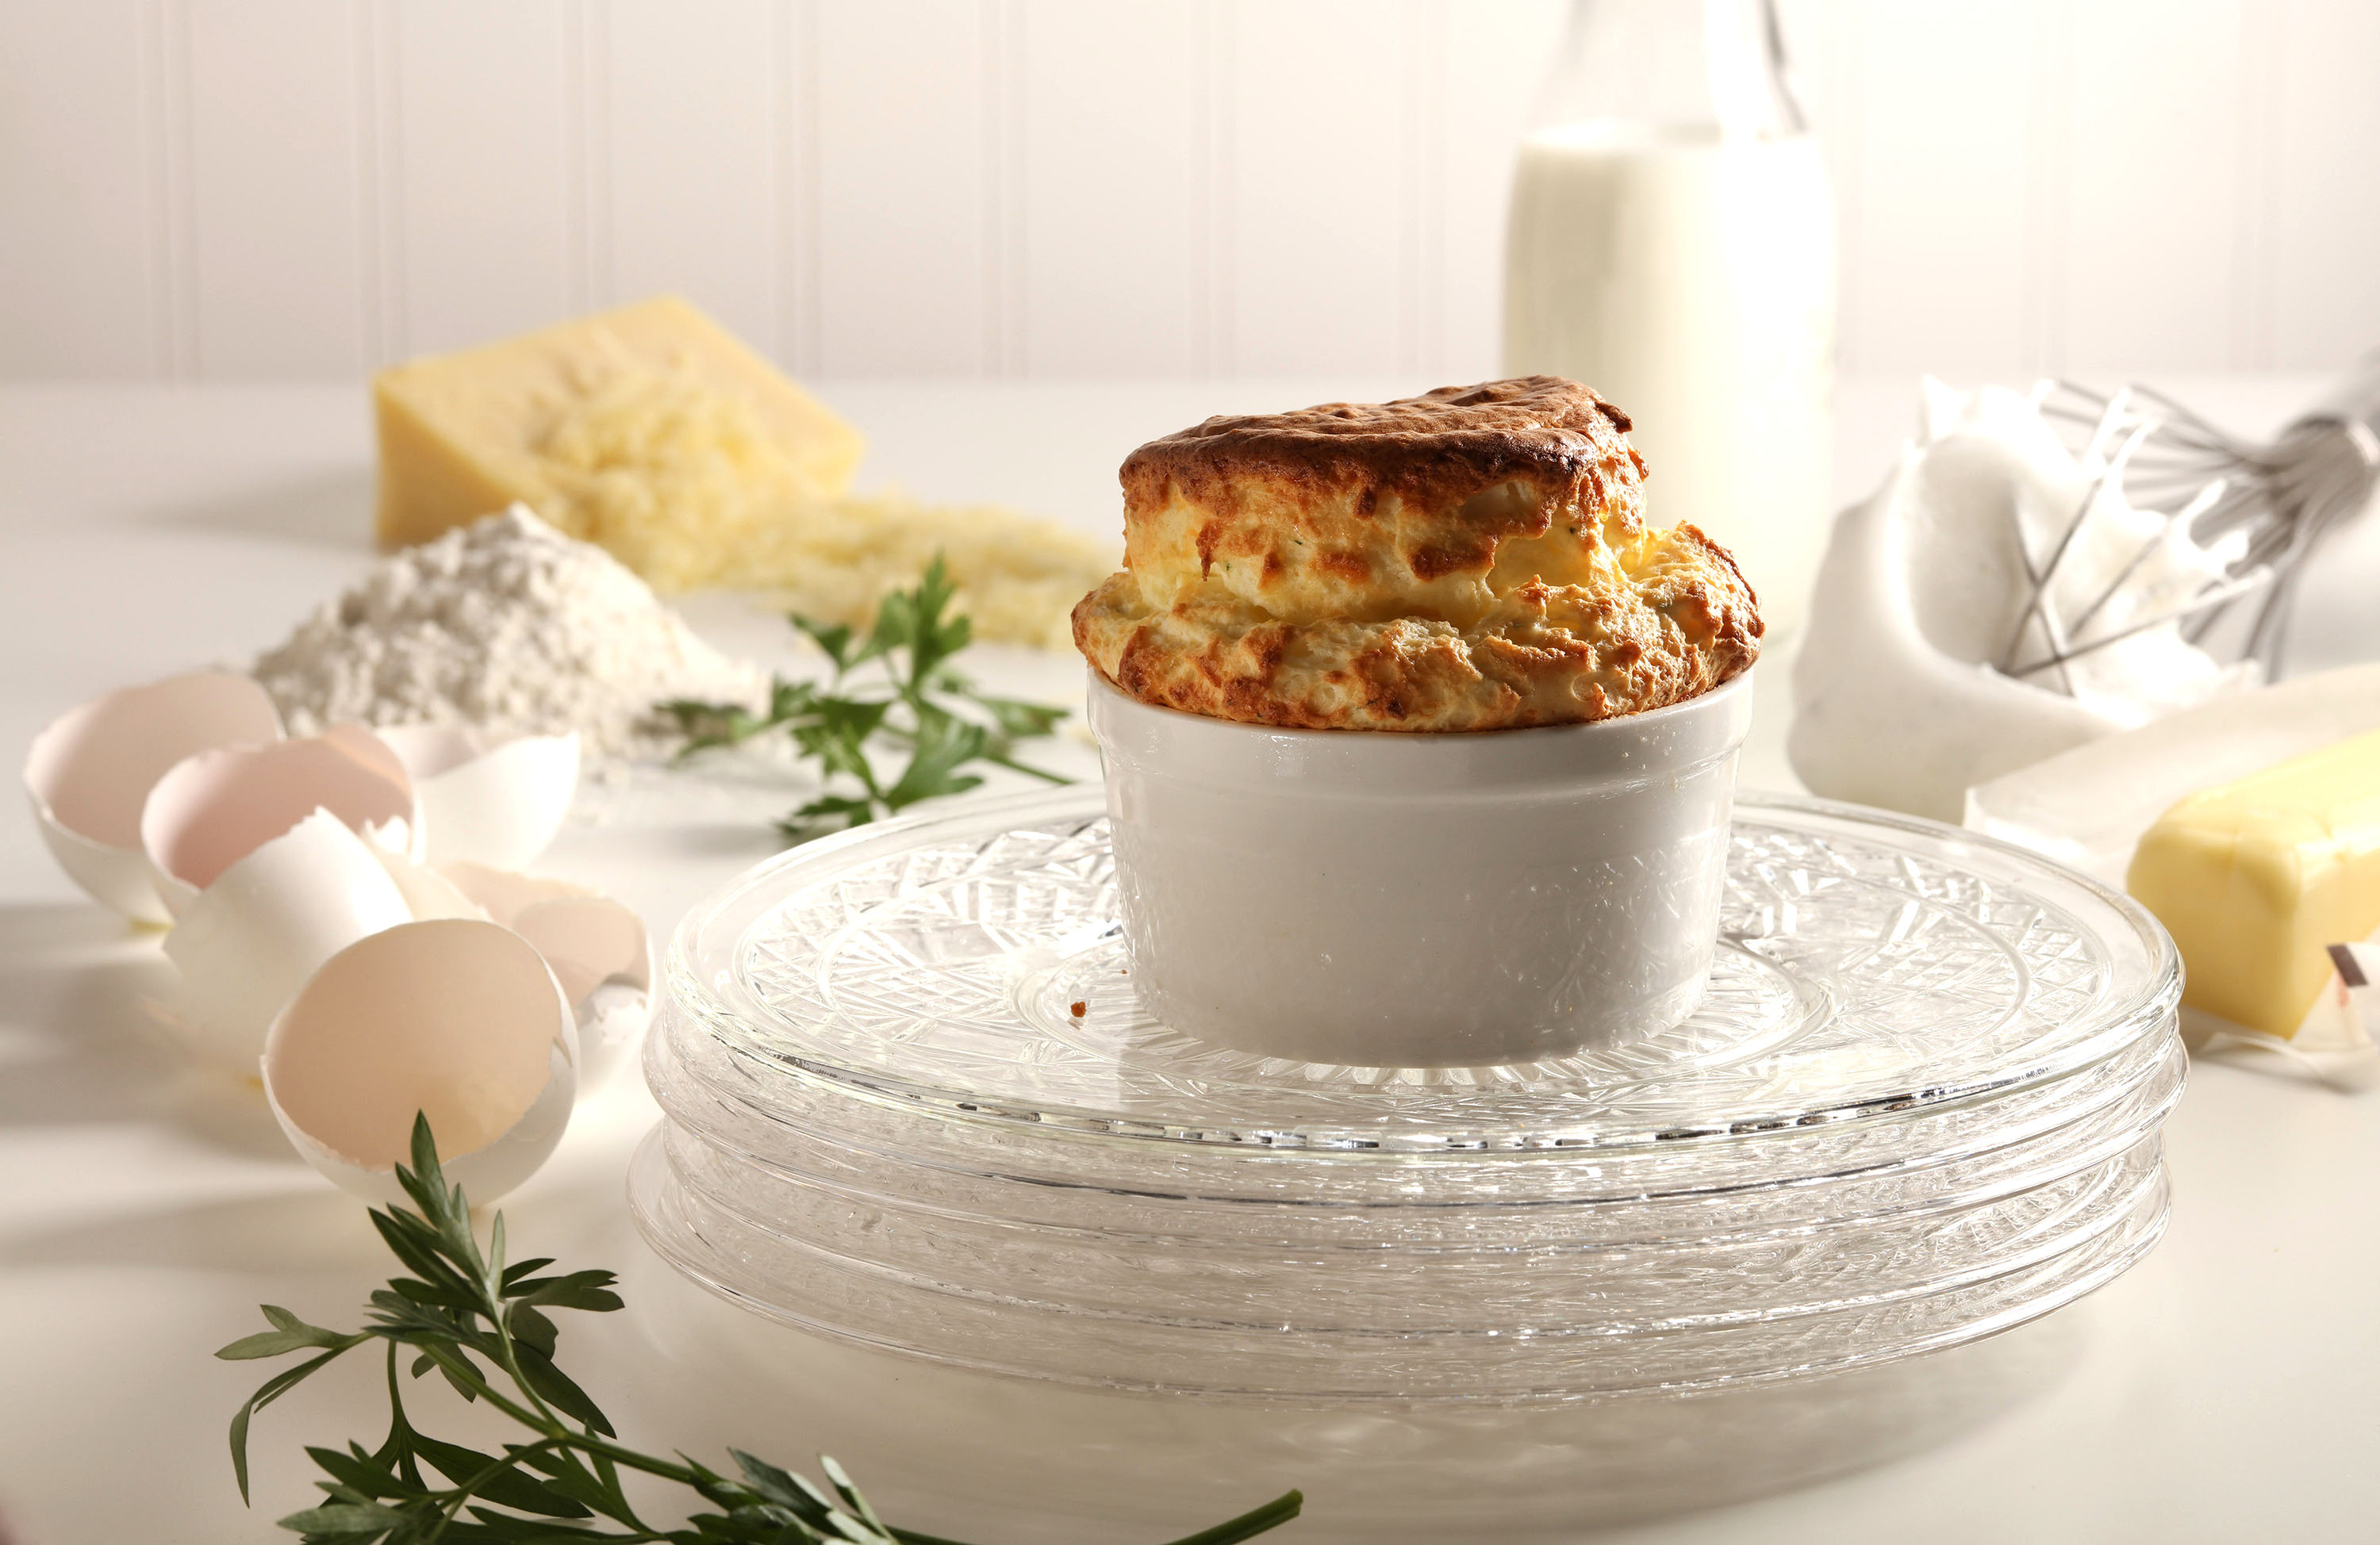 FOOD_CHEESE-SOUFFLE_TB Souffles, besides being delicious and deceptively easy to pull off, are totally old school, classy with a delicate strength, like Audrey Hepburn in a ramekin. (Food styling by Mark Graham.) (Abel Uribe/Chicago Tribune/TNS)